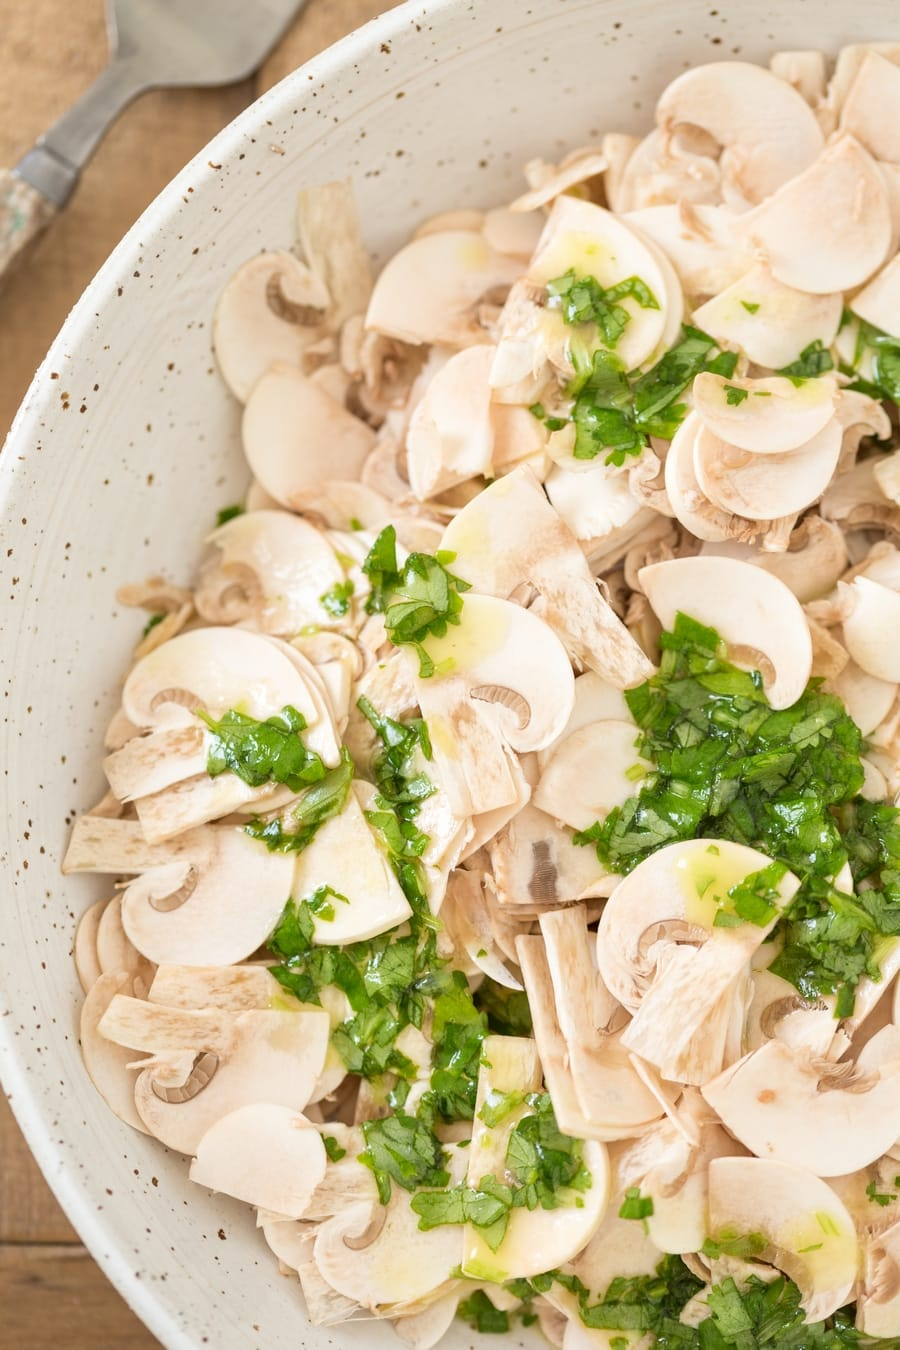 Cilantro lime dressing poured over thinly sliced mushrooms to make raw mushroom salad.